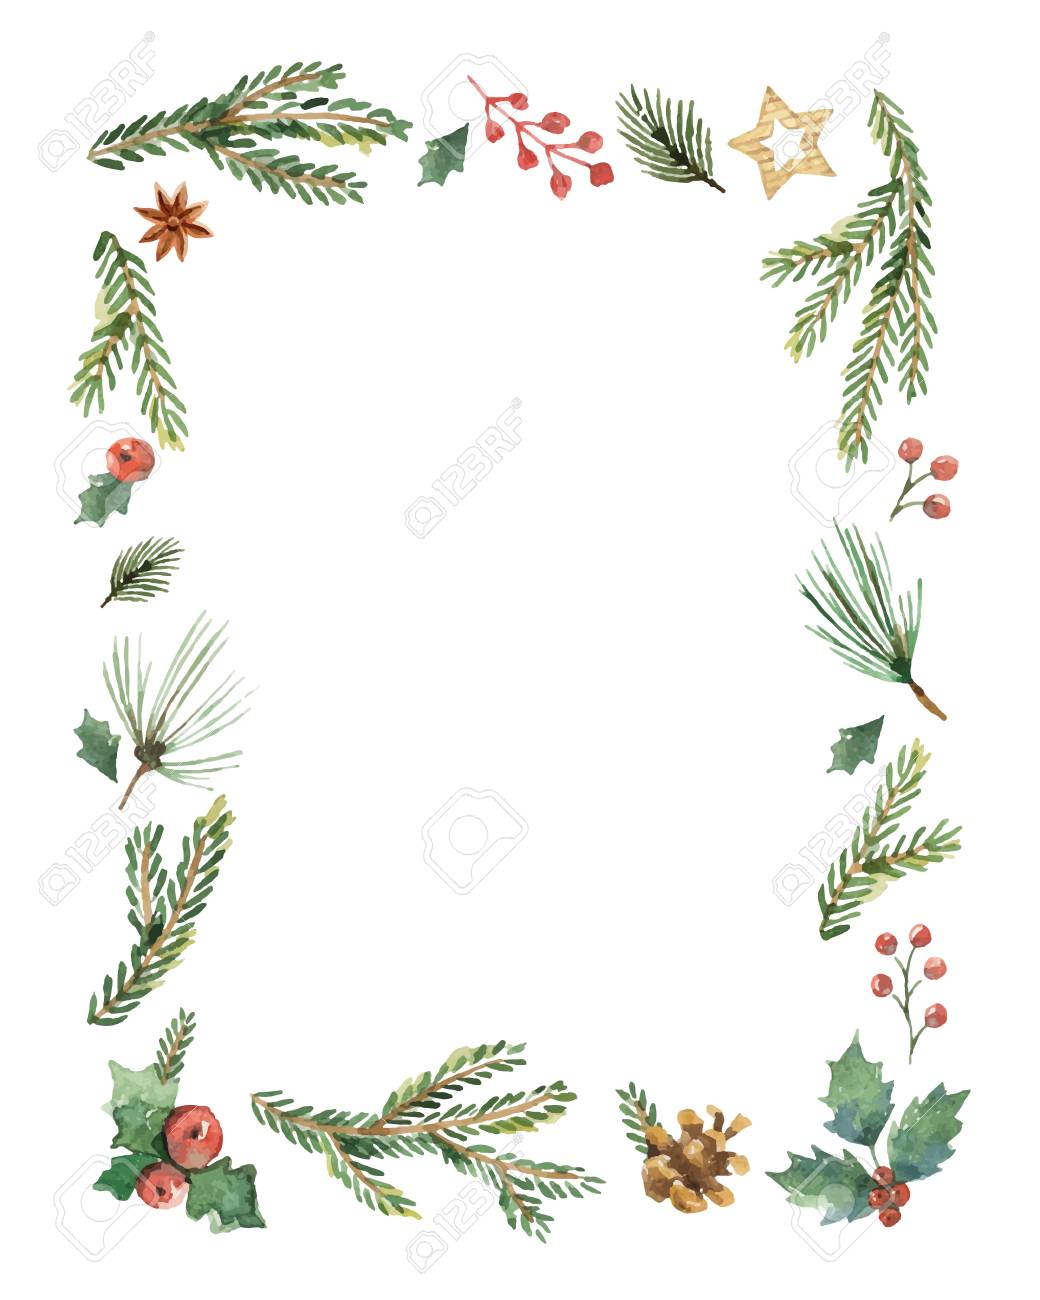 Christmas Frame.Watercolor Vector Christmas Frame With Fir Branches And Place